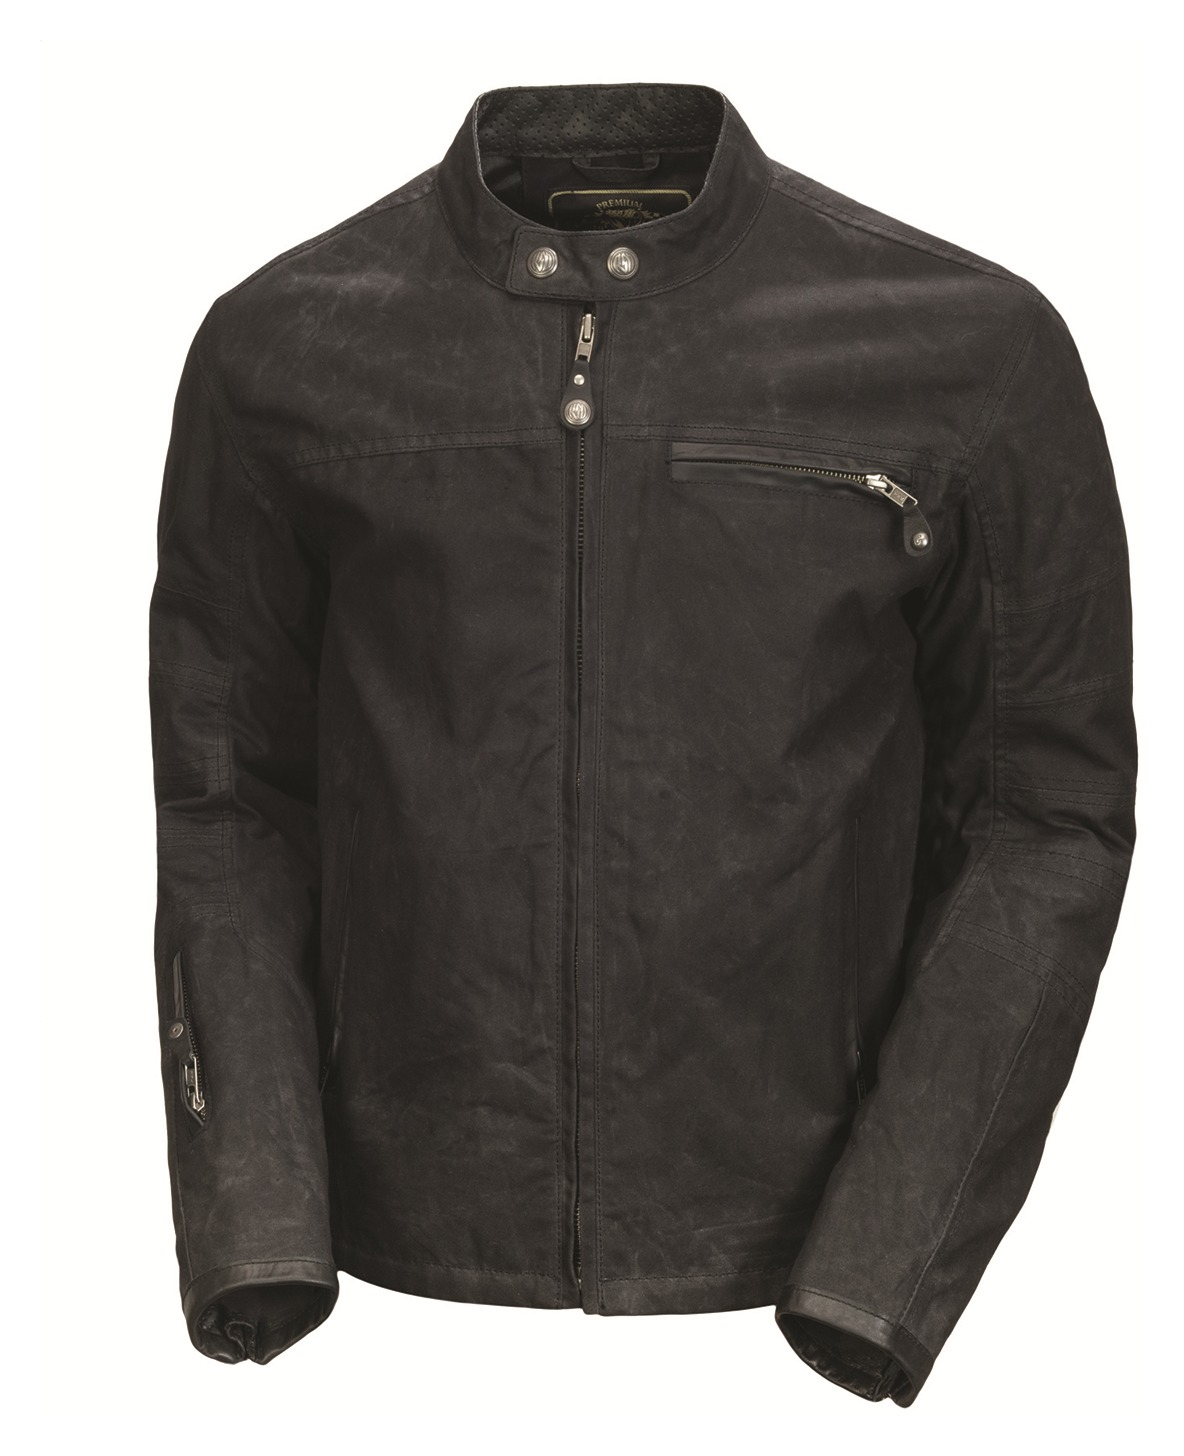 Find great deals on eBay for cotton motorcycle jacket. Shop with confidence.